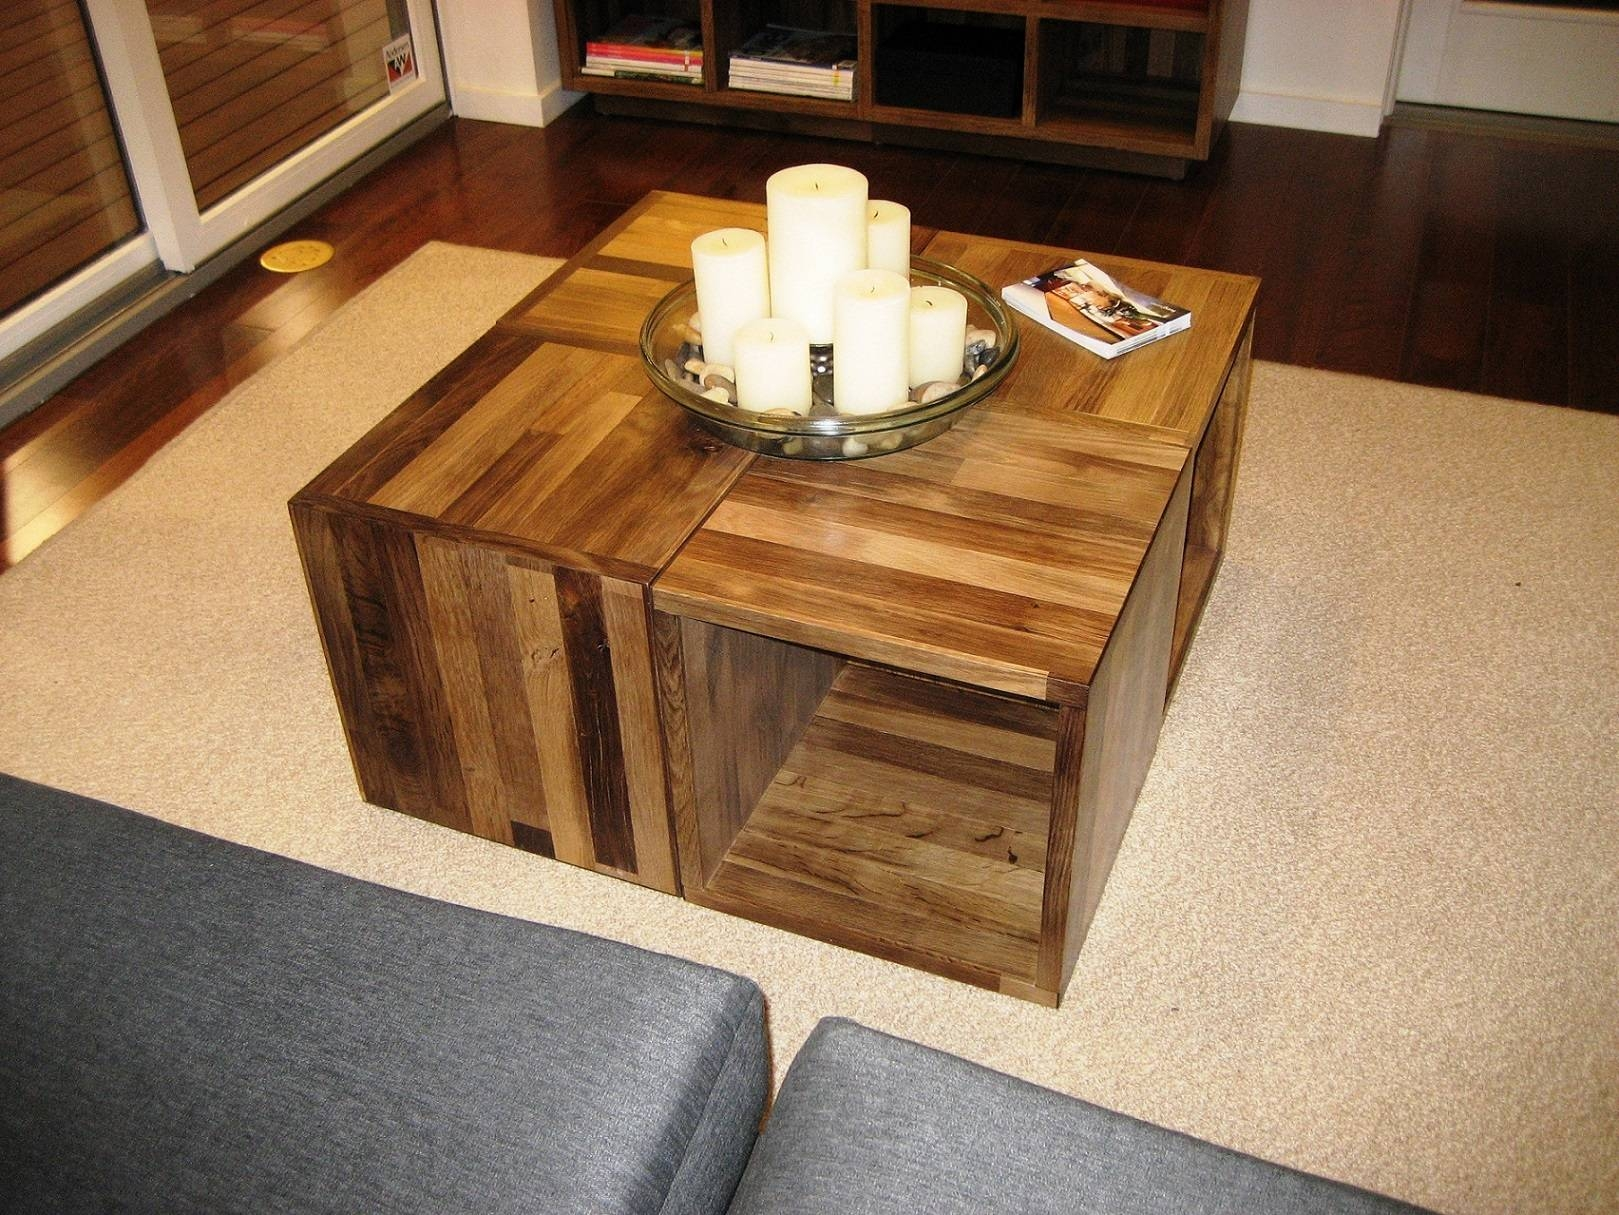 Cool Cool Wood Coffee Tables Unique Wooden Popular On Square Table within Hardwood Coffee Tables With Storage (Image 11 of 30)